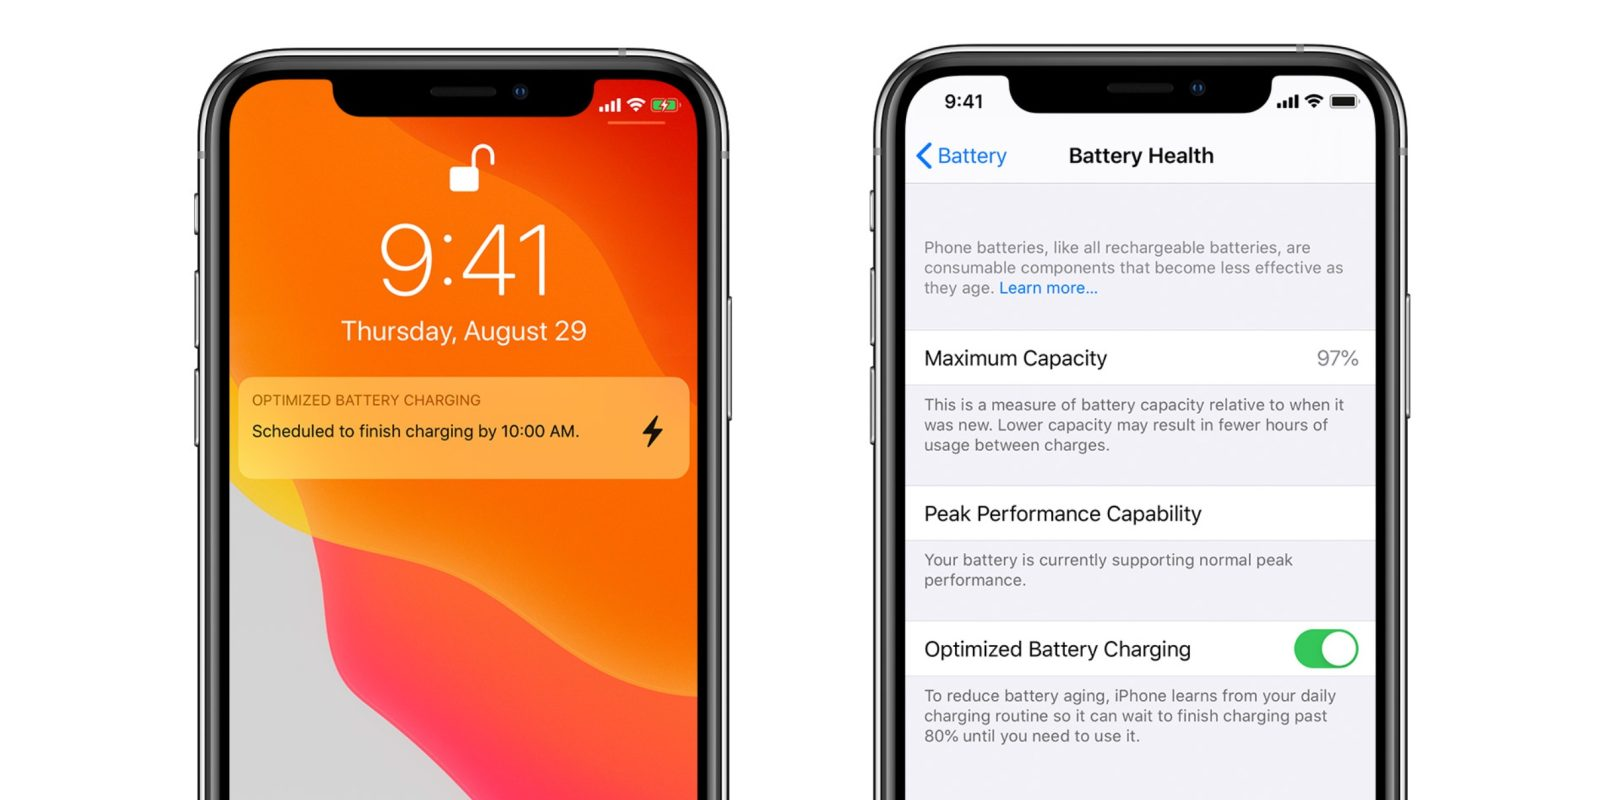 iOS 13 iPhone features: What is Optimized Battery Charging? - 9to5Mac